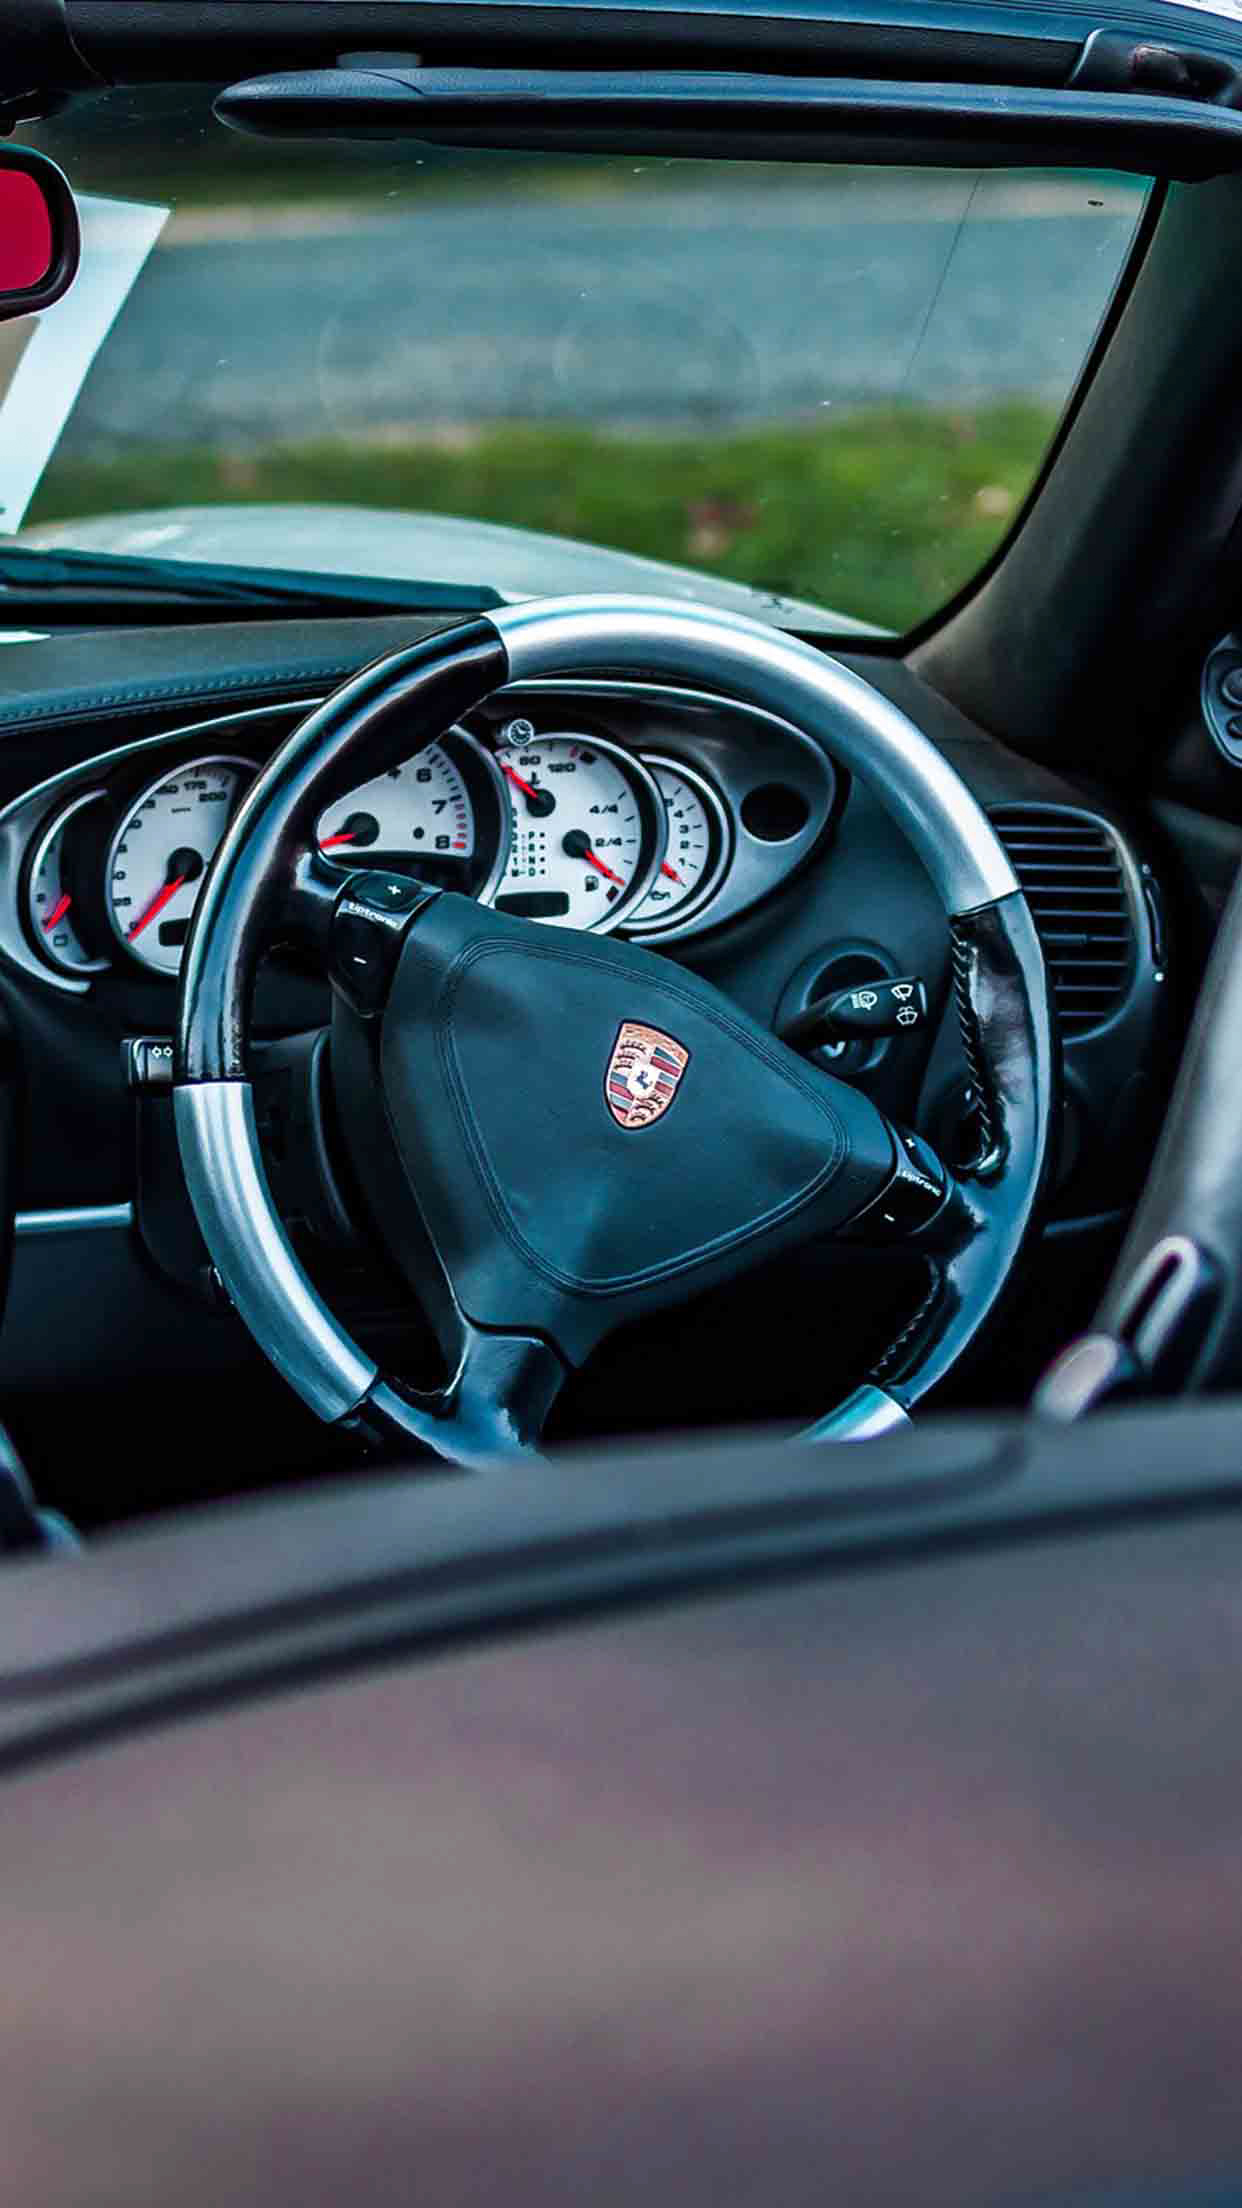 Porsche Steering iPhone wallpaper